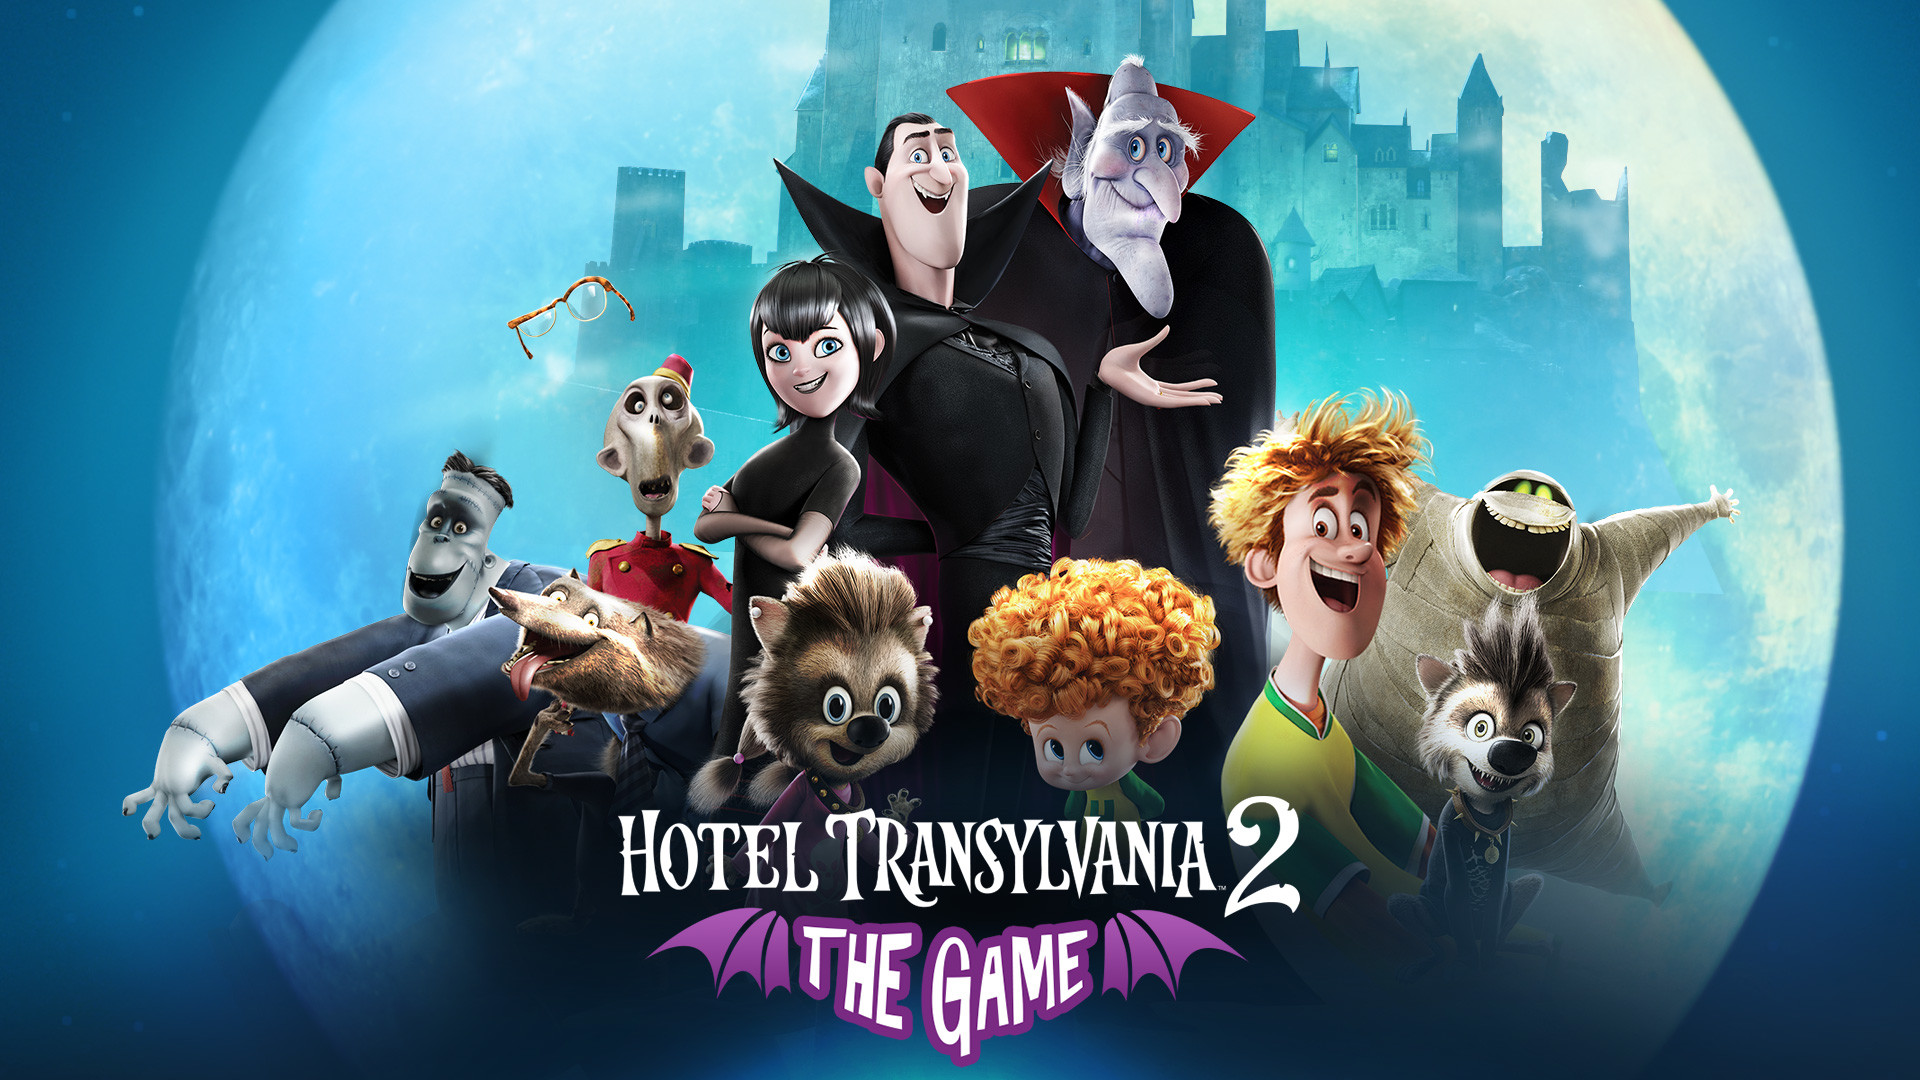 Hotel Transylvania 2 Movie Wallpapers | HD Wallpapers